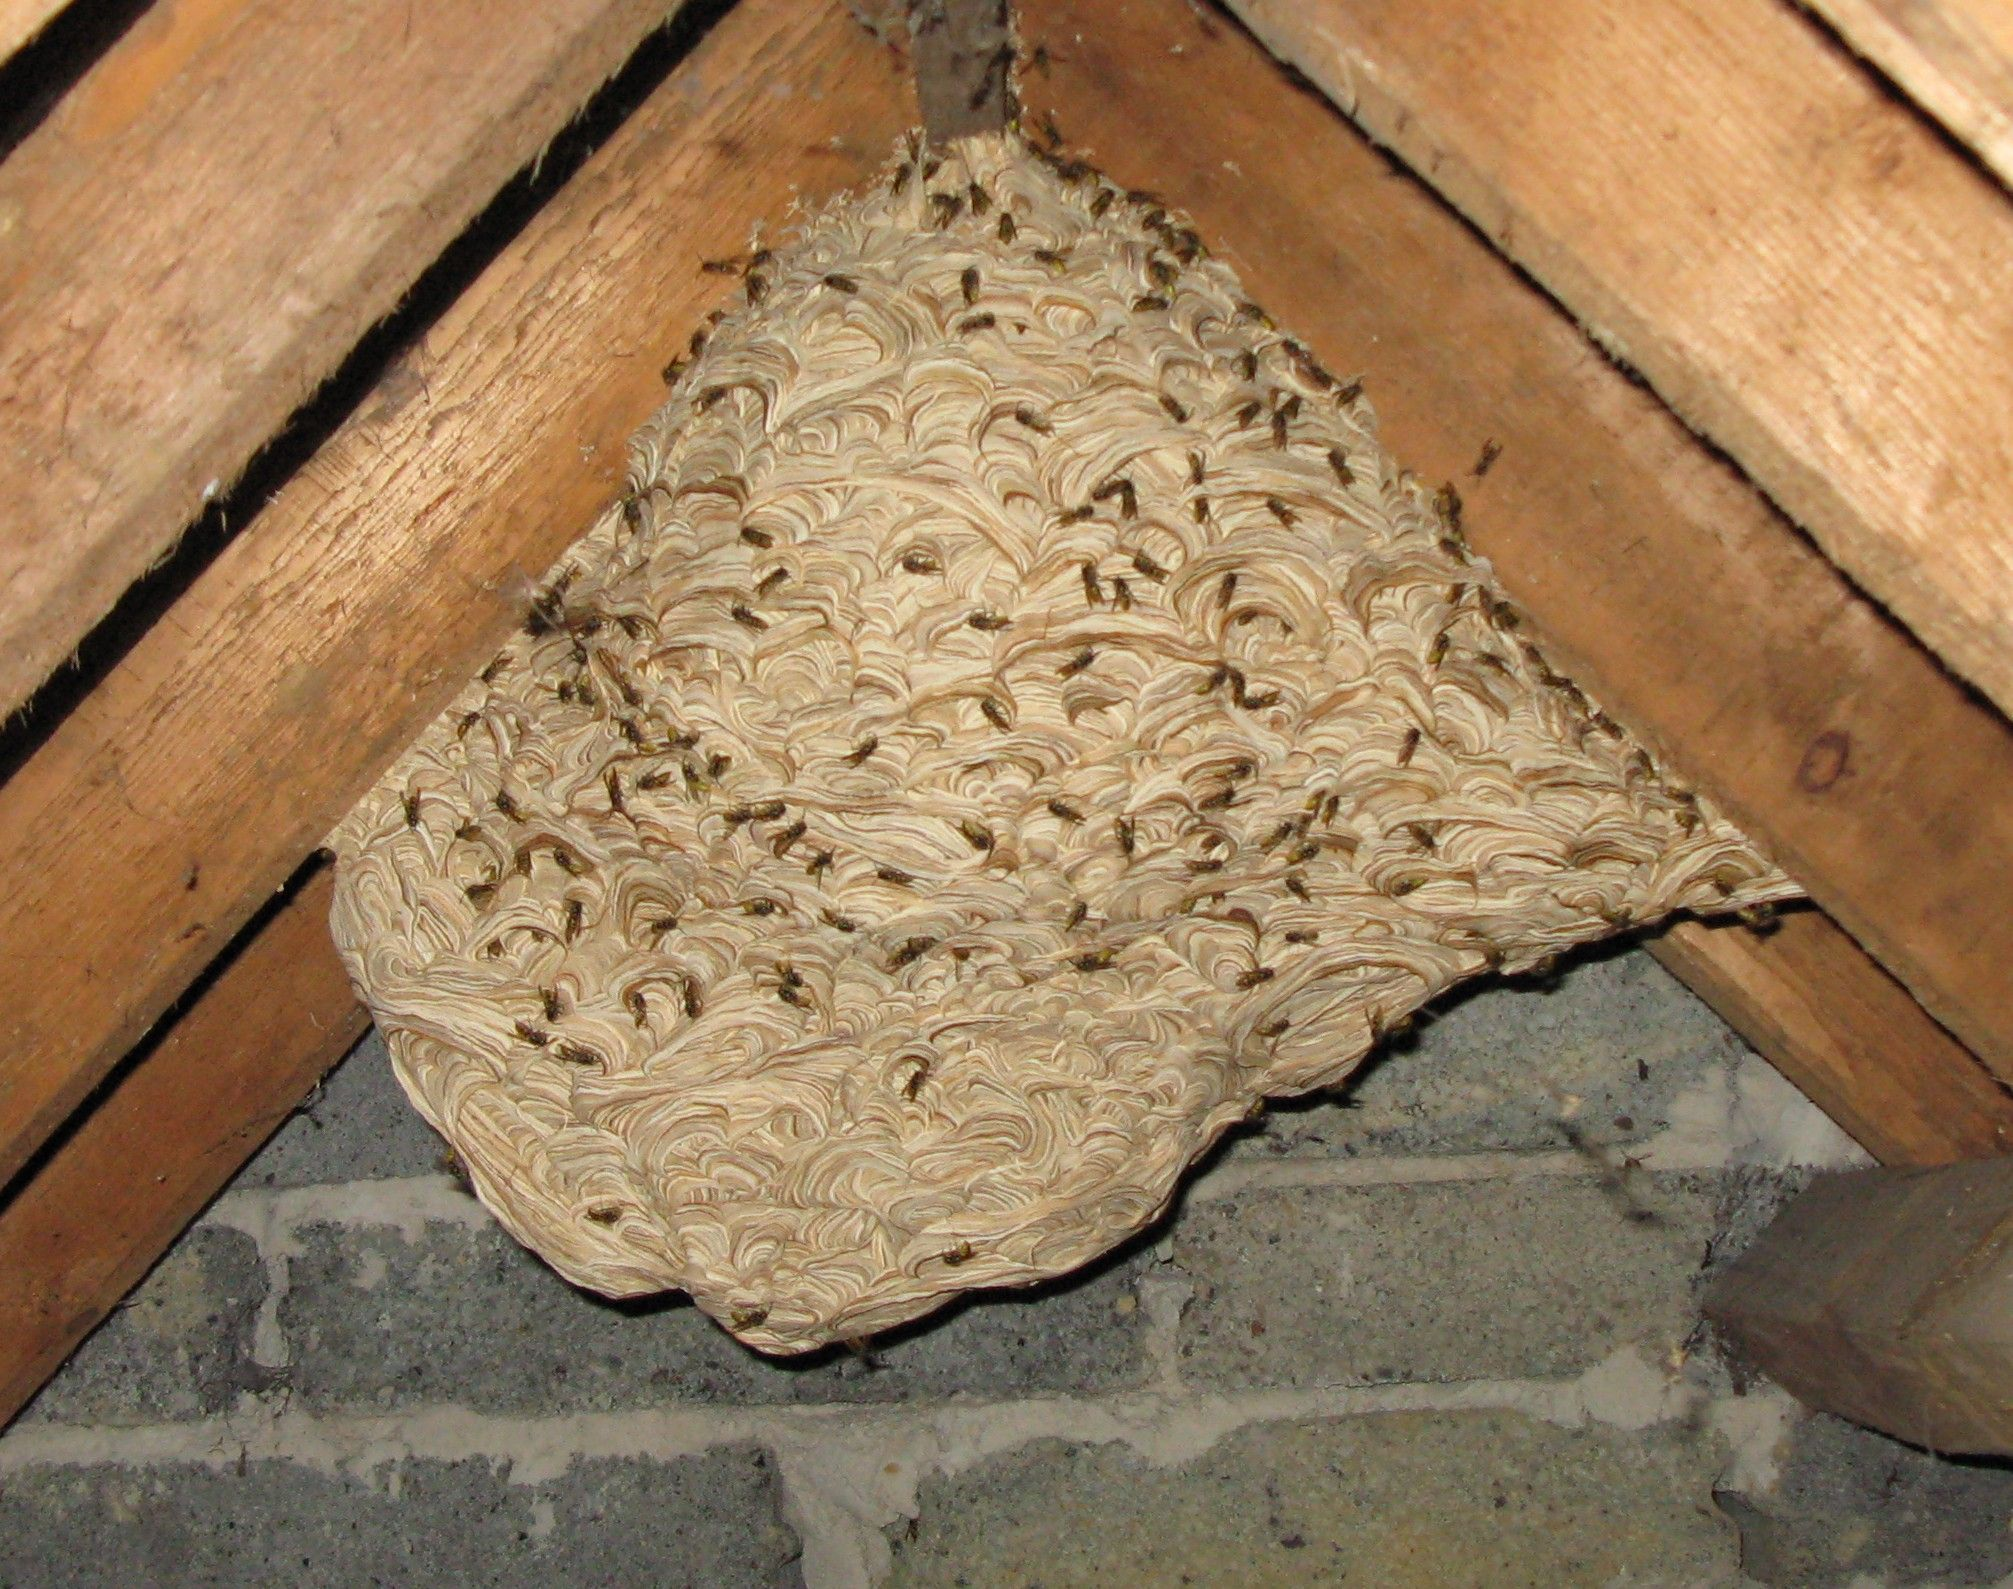 yellow-jacket nests   Had a large yellow jacket nest removed from ...